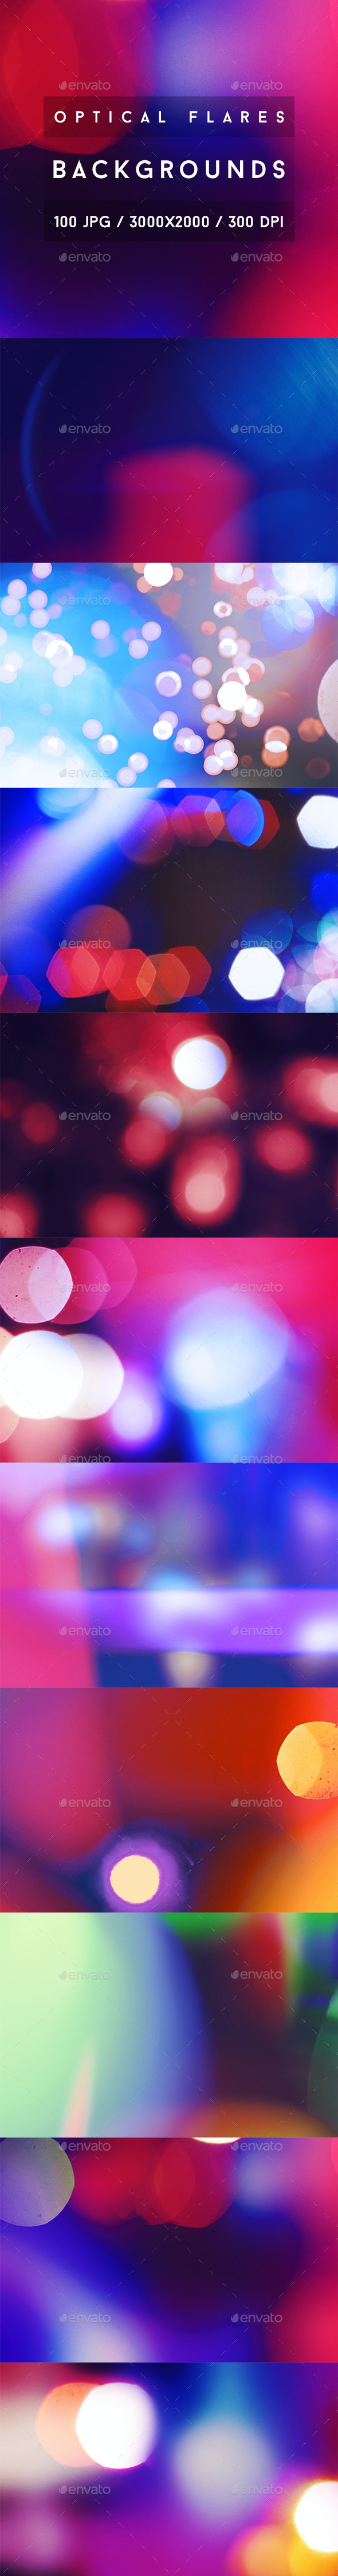 100 Optical Flares Backgrounds - Abstract Backgrounds